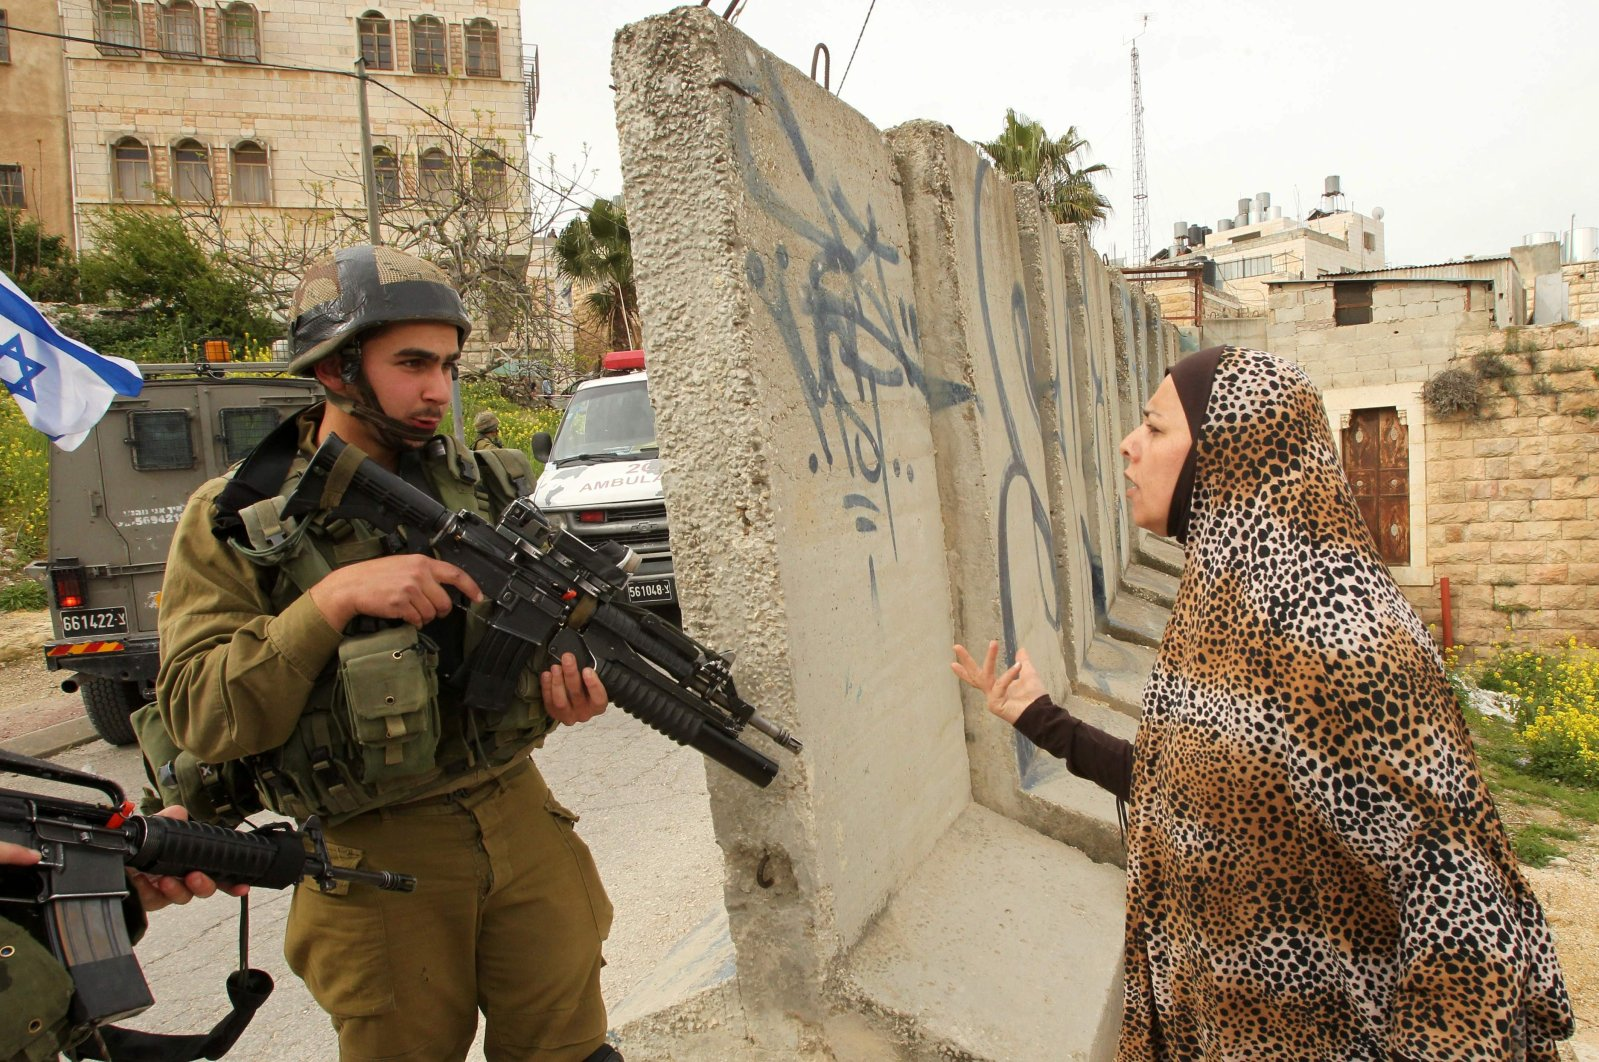 A Palestinian woman speaks with an Israeli soldier at the entrance of the occupied West Bank town of Hebron, Palestine, March 24, 2016. (AFP Photo)